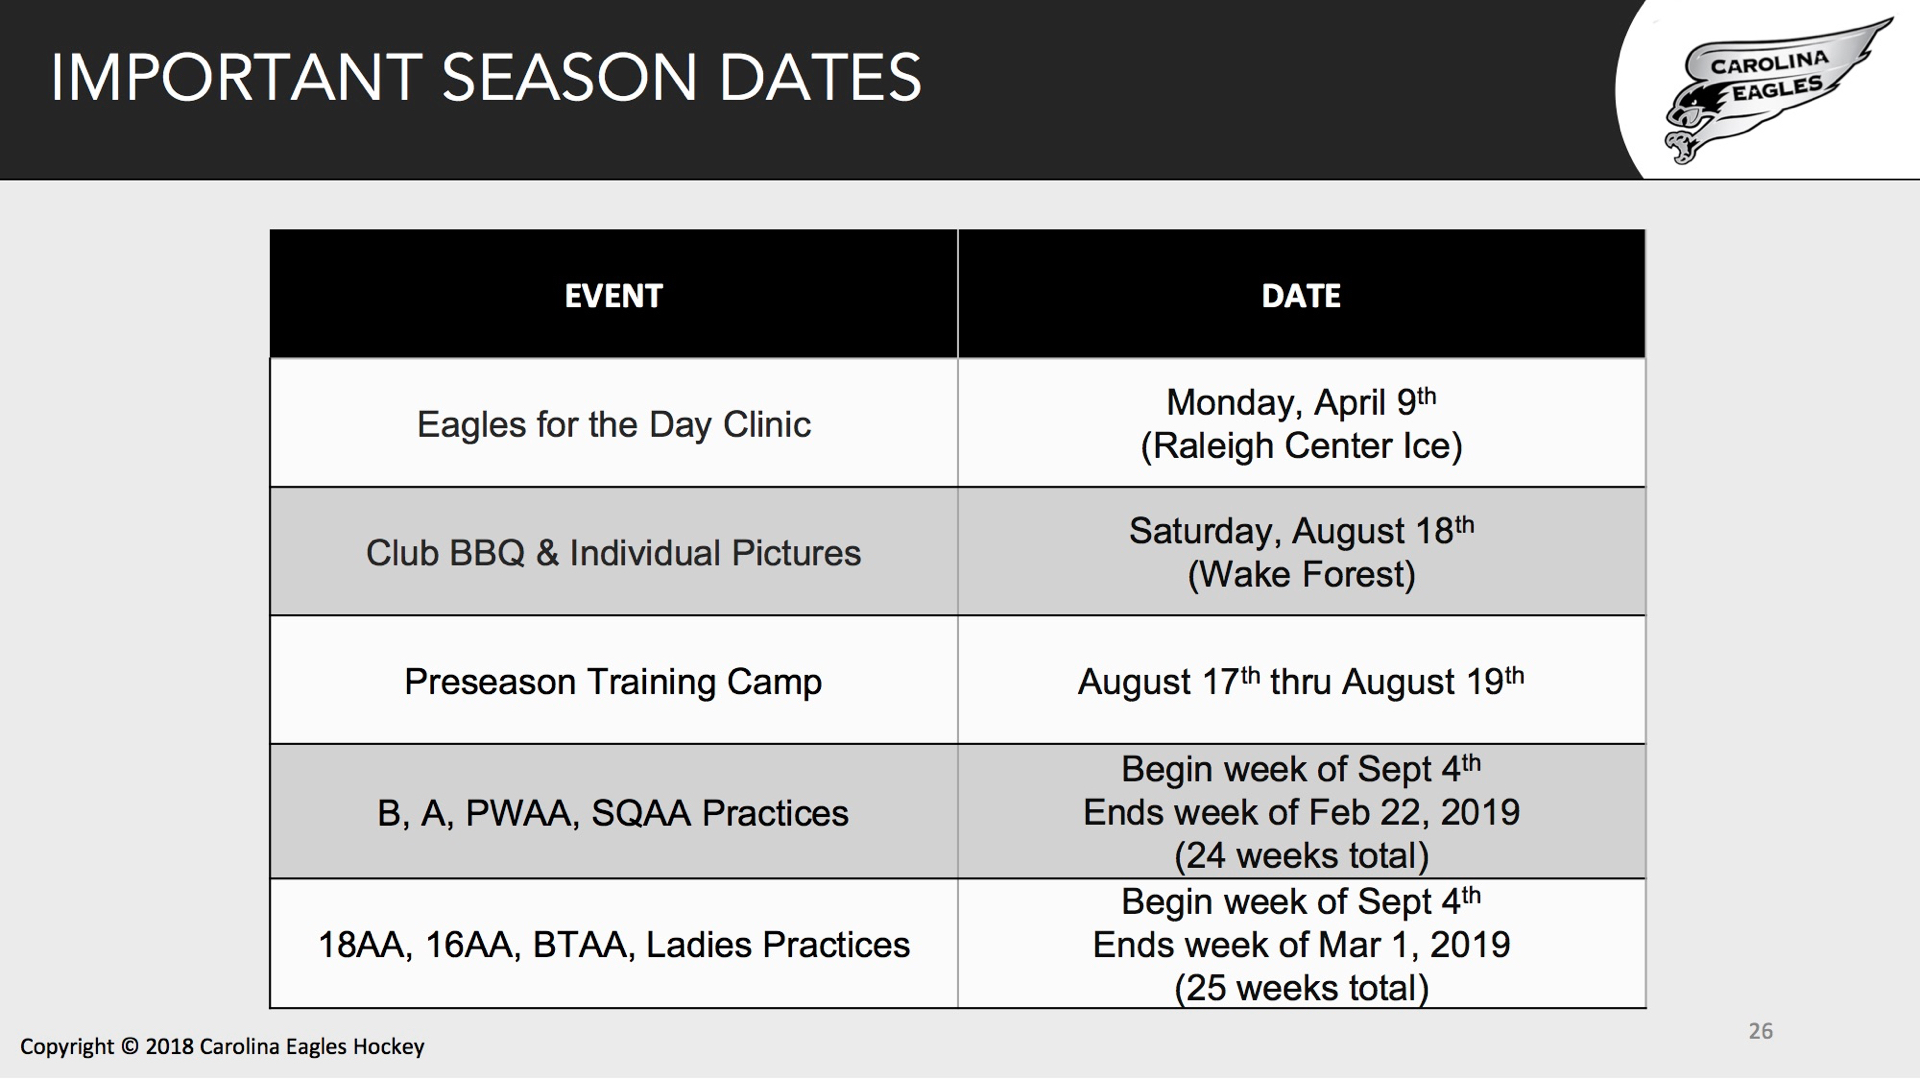 Dates to Note